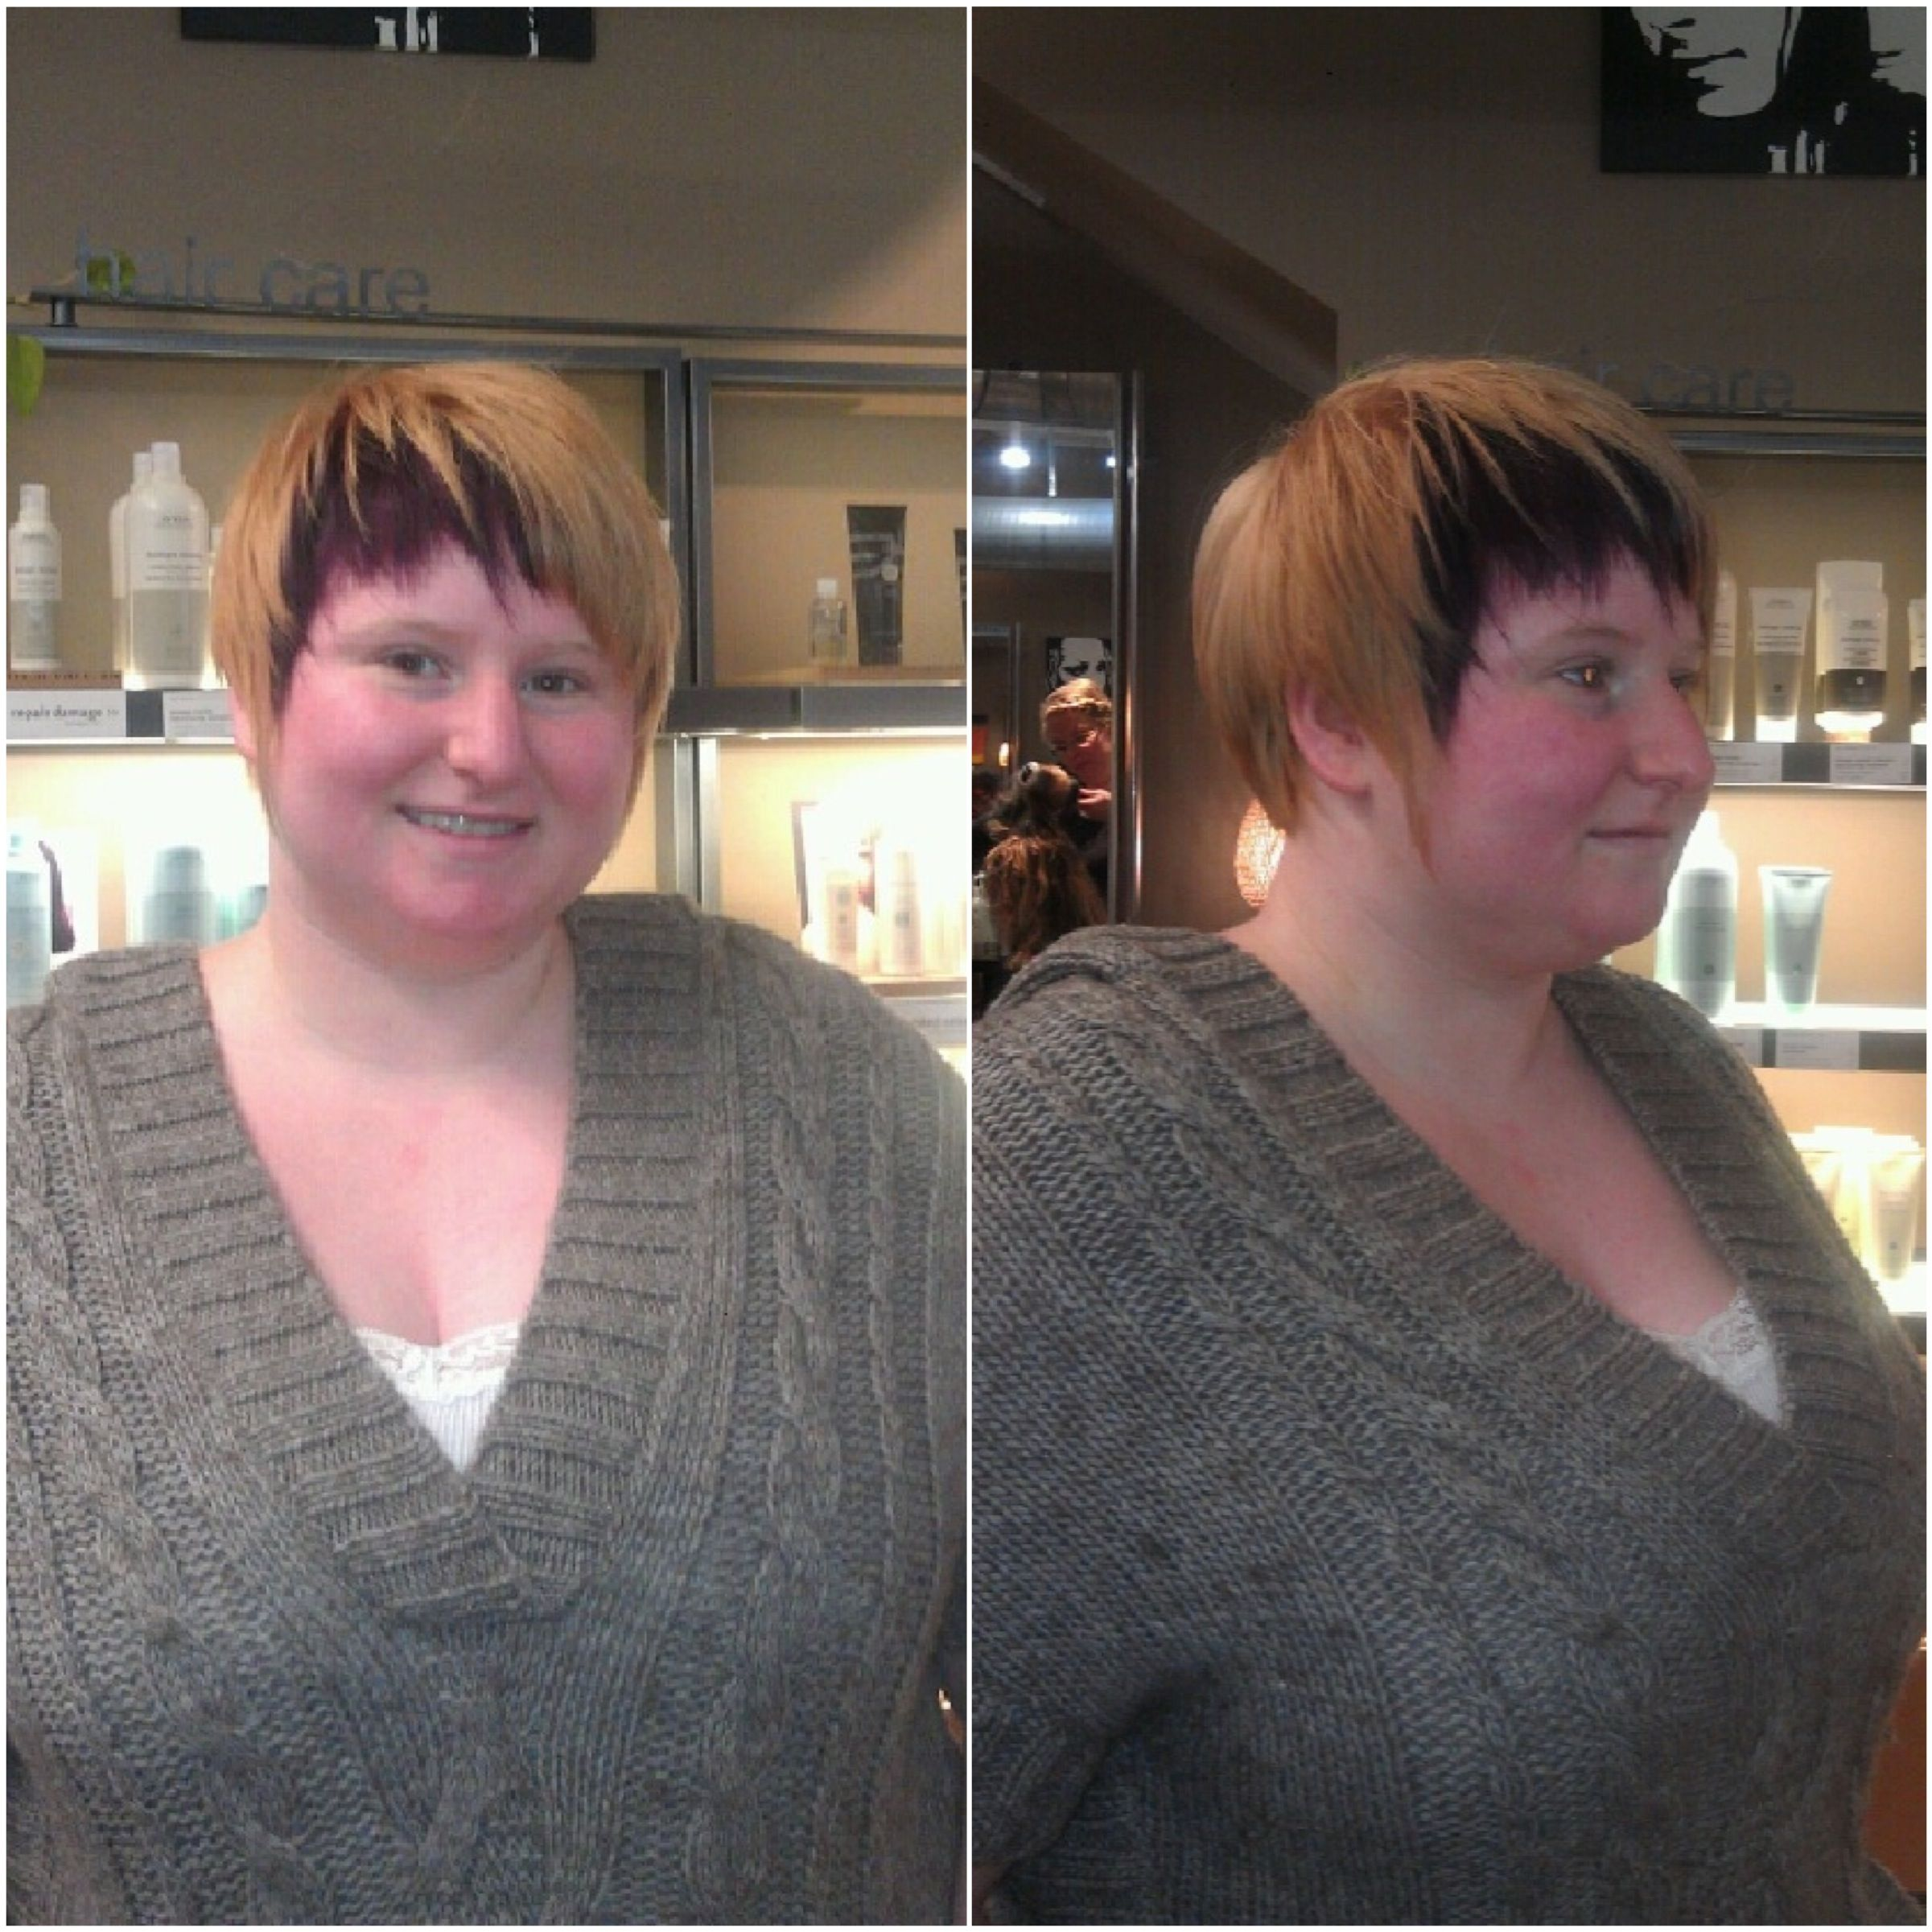 Senior Stylist Sunshine took Marla's hair to a soft strawberry blonde with  a fun pop of purple! This was the first time Marla had her hair colored.